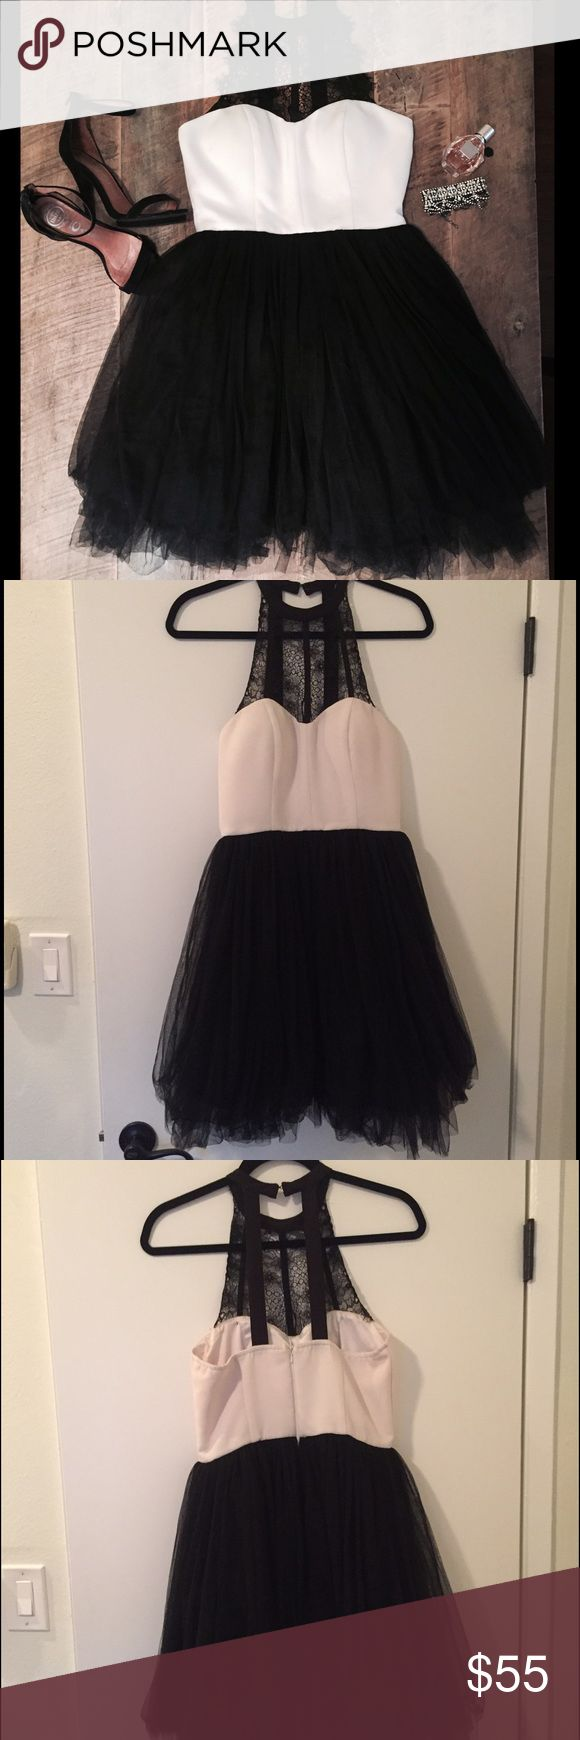 Party Dress Great for a fun event! Looks awesome on different body types! It has been worn once and dry cleaned. Halter with lace, fitted bodice, and tuelle skirt. Party/cocktail tuelle dress 🎉 awesome for a wedding or even prom. a.  drea Dresses